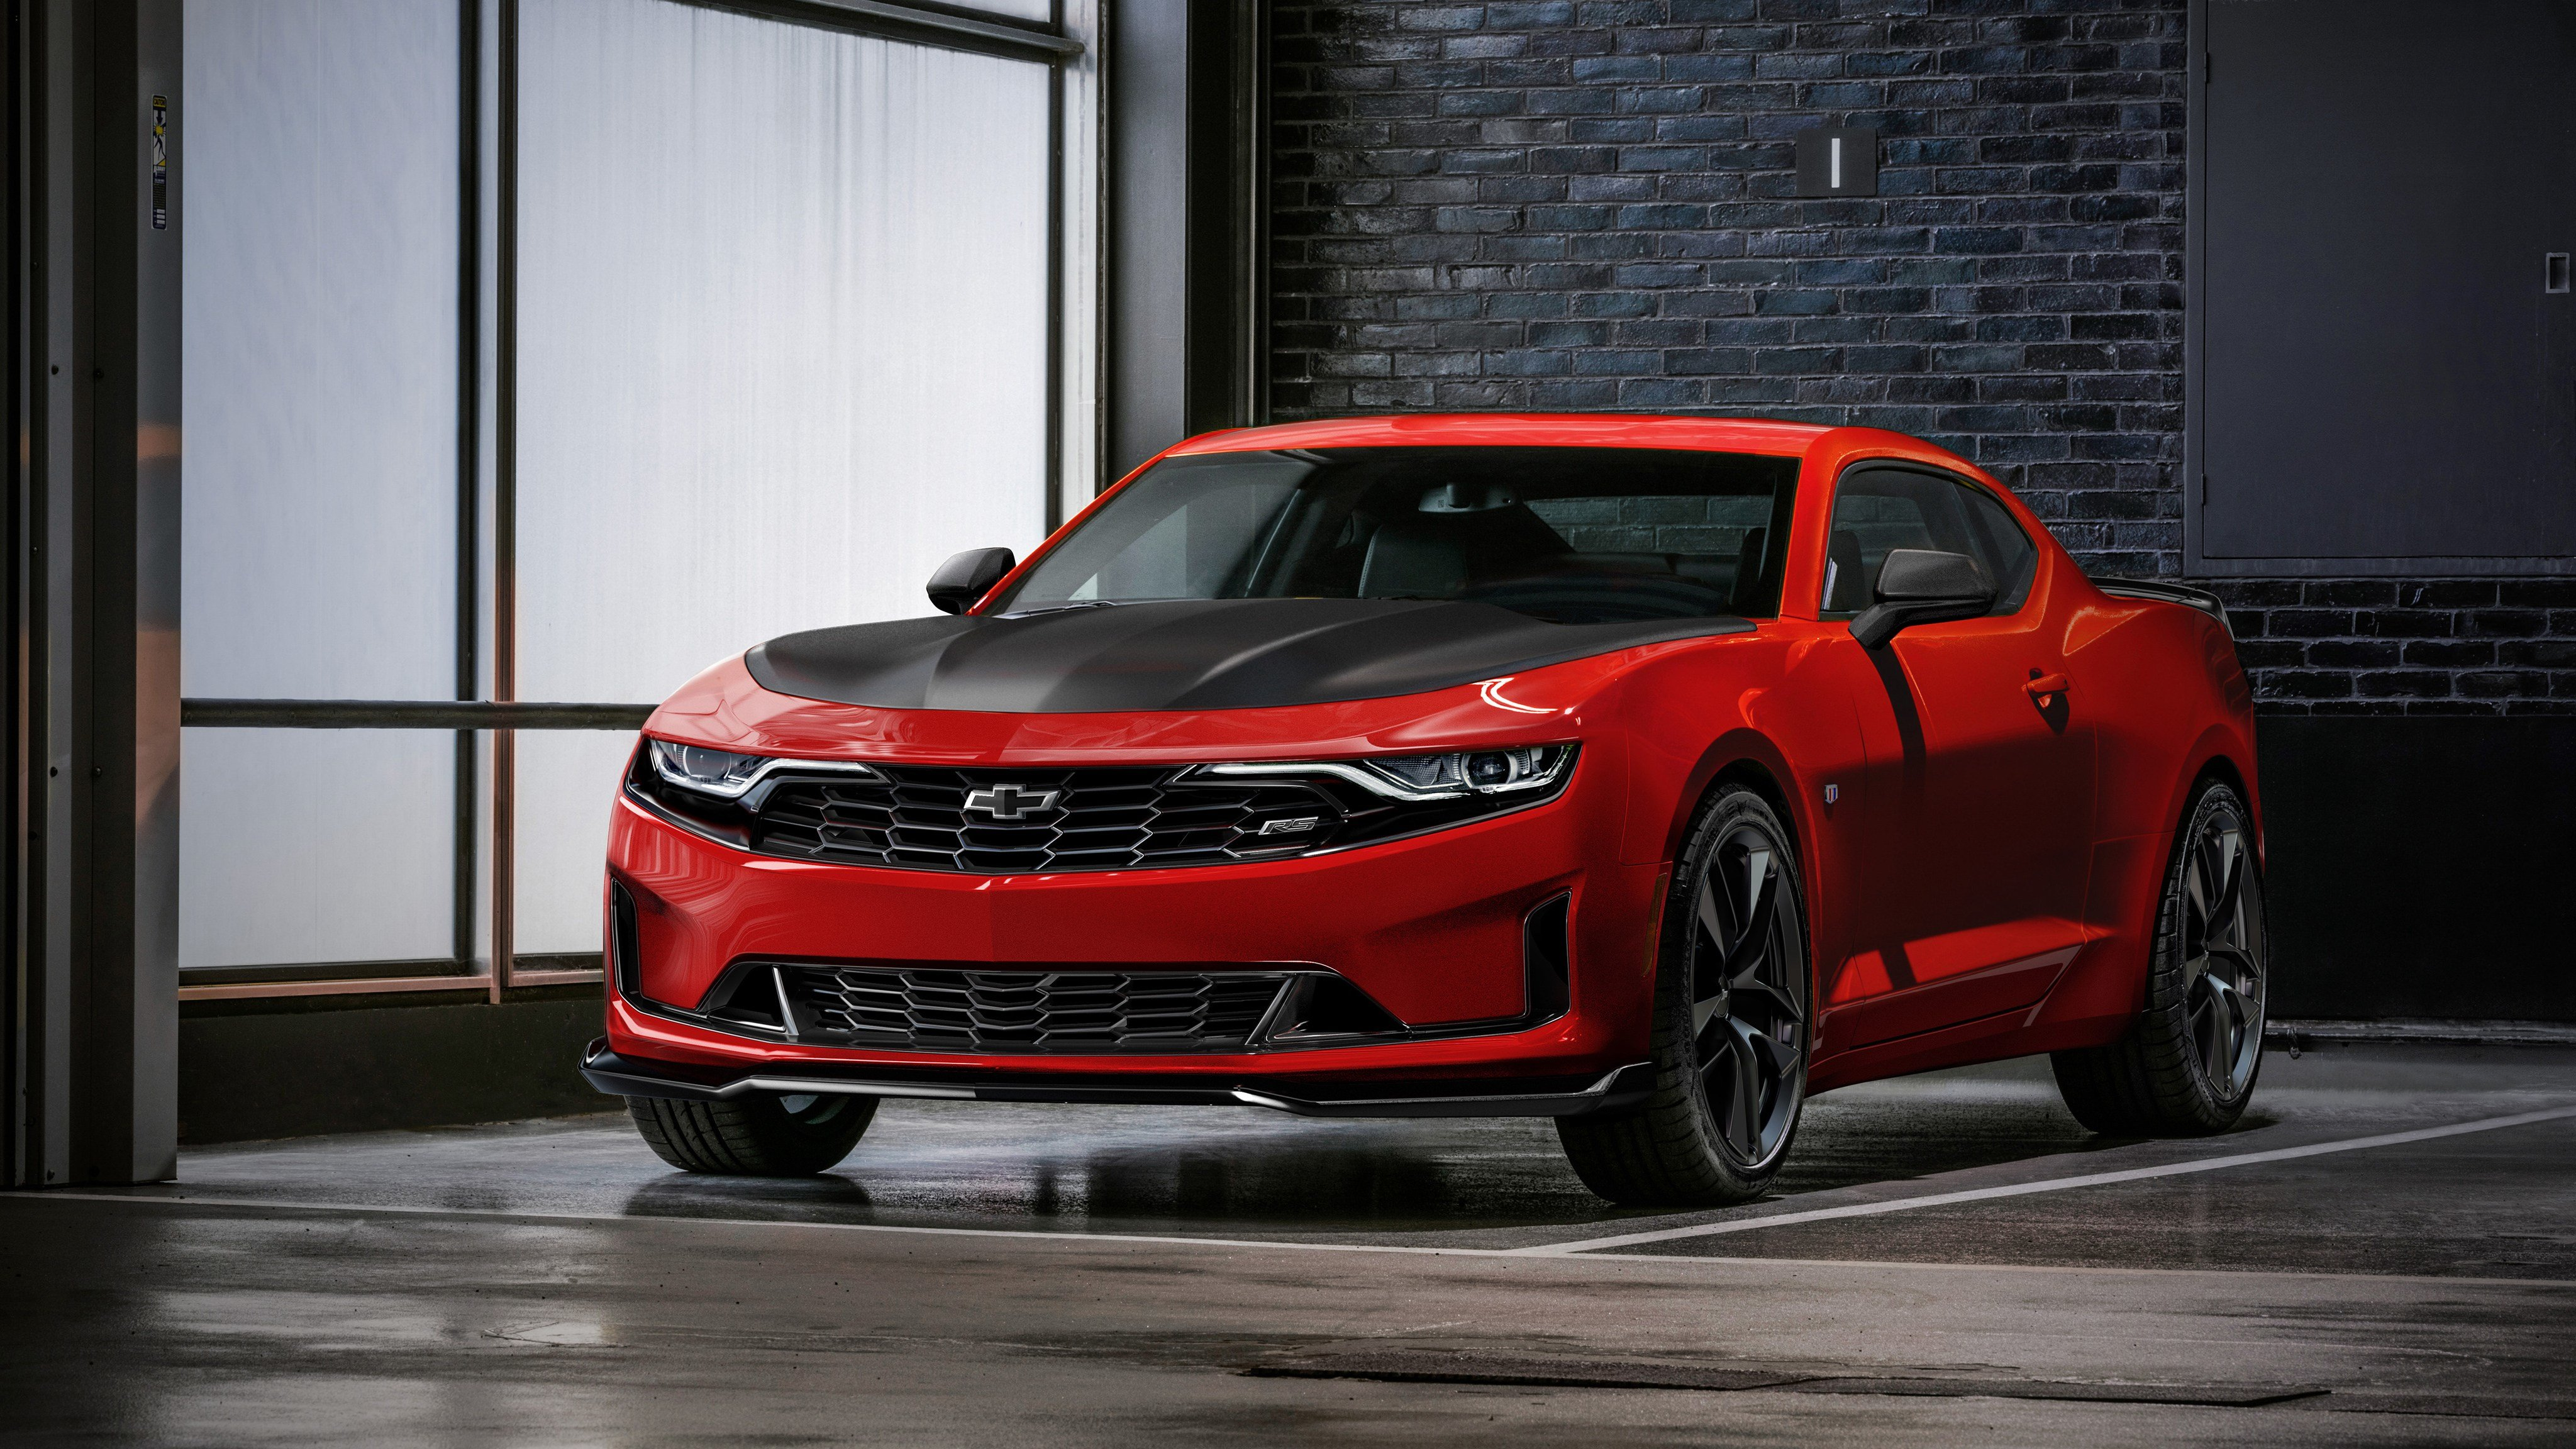 New 2019 Chevrolet Camaro Rs 1Le 4K Wallpaper Hd Car On This Month